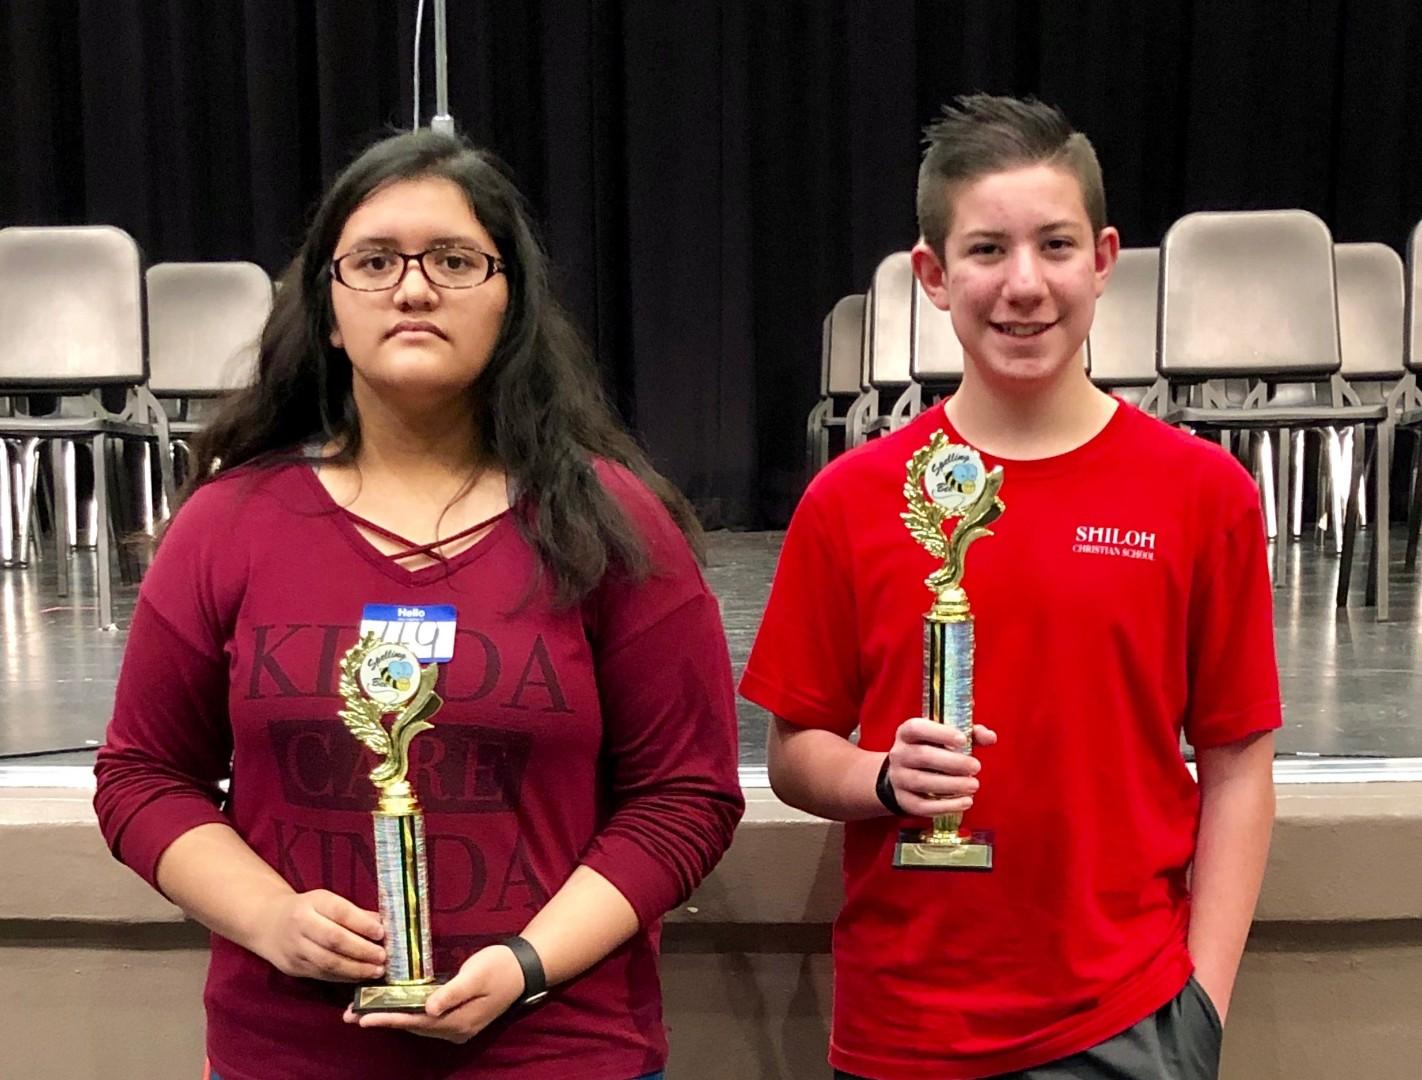 promo code 9f708 6744d Shiloh Christian School eighth grader Robby Batson, right, and Kate Sosa,  TMS 7th grader display their winner and runner-up trophies for being  Cherokee ...